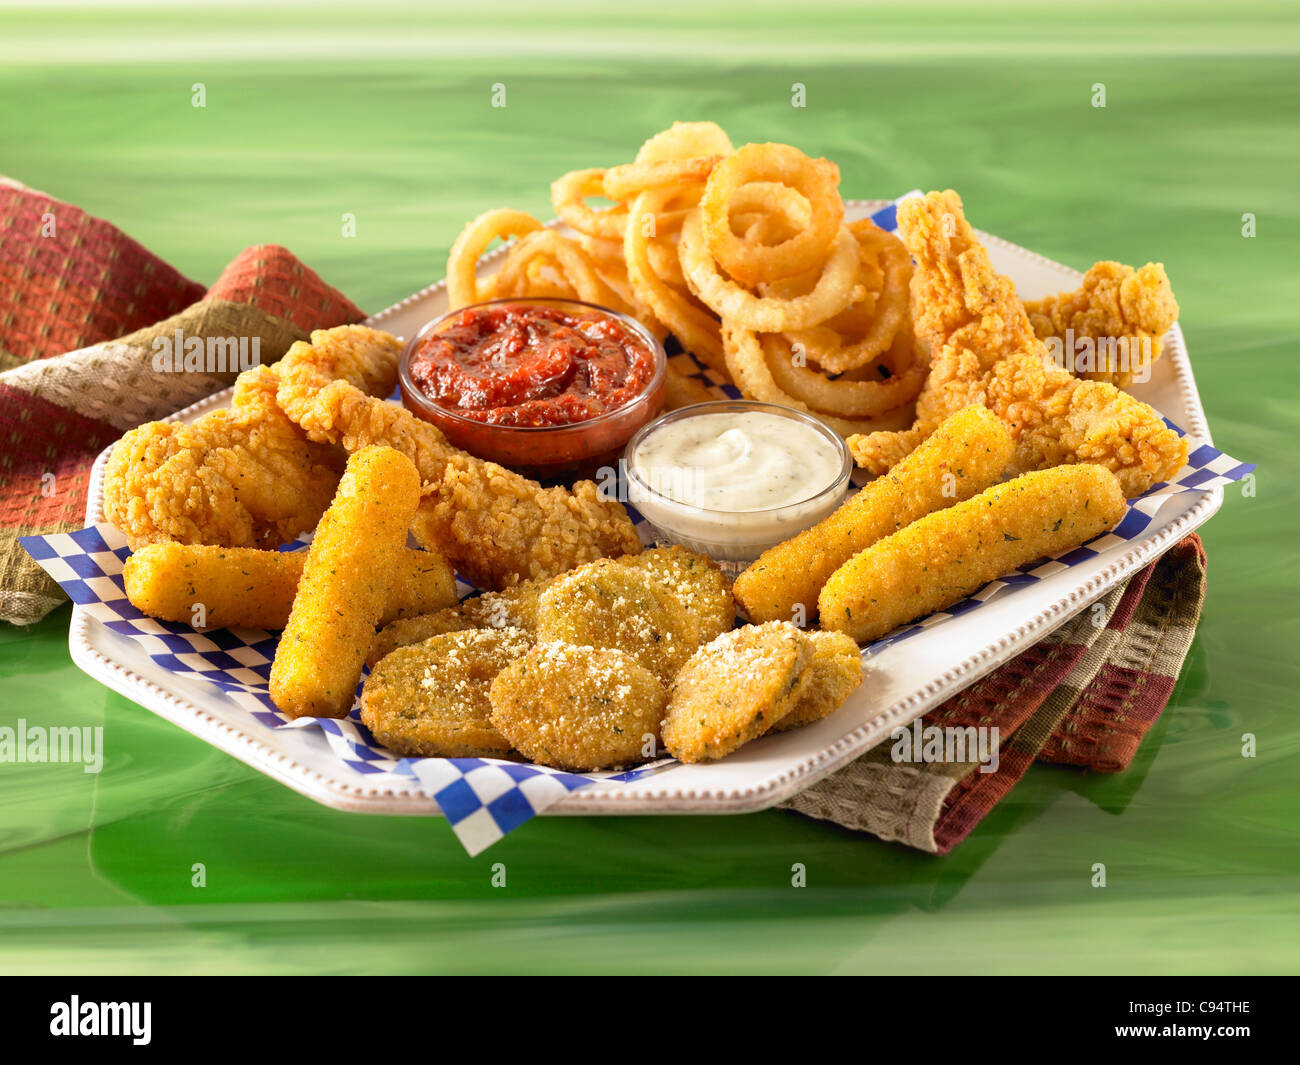 Mixed appetizer of onion rings, chicken wings, fried zucchini with sauces - Stock Image